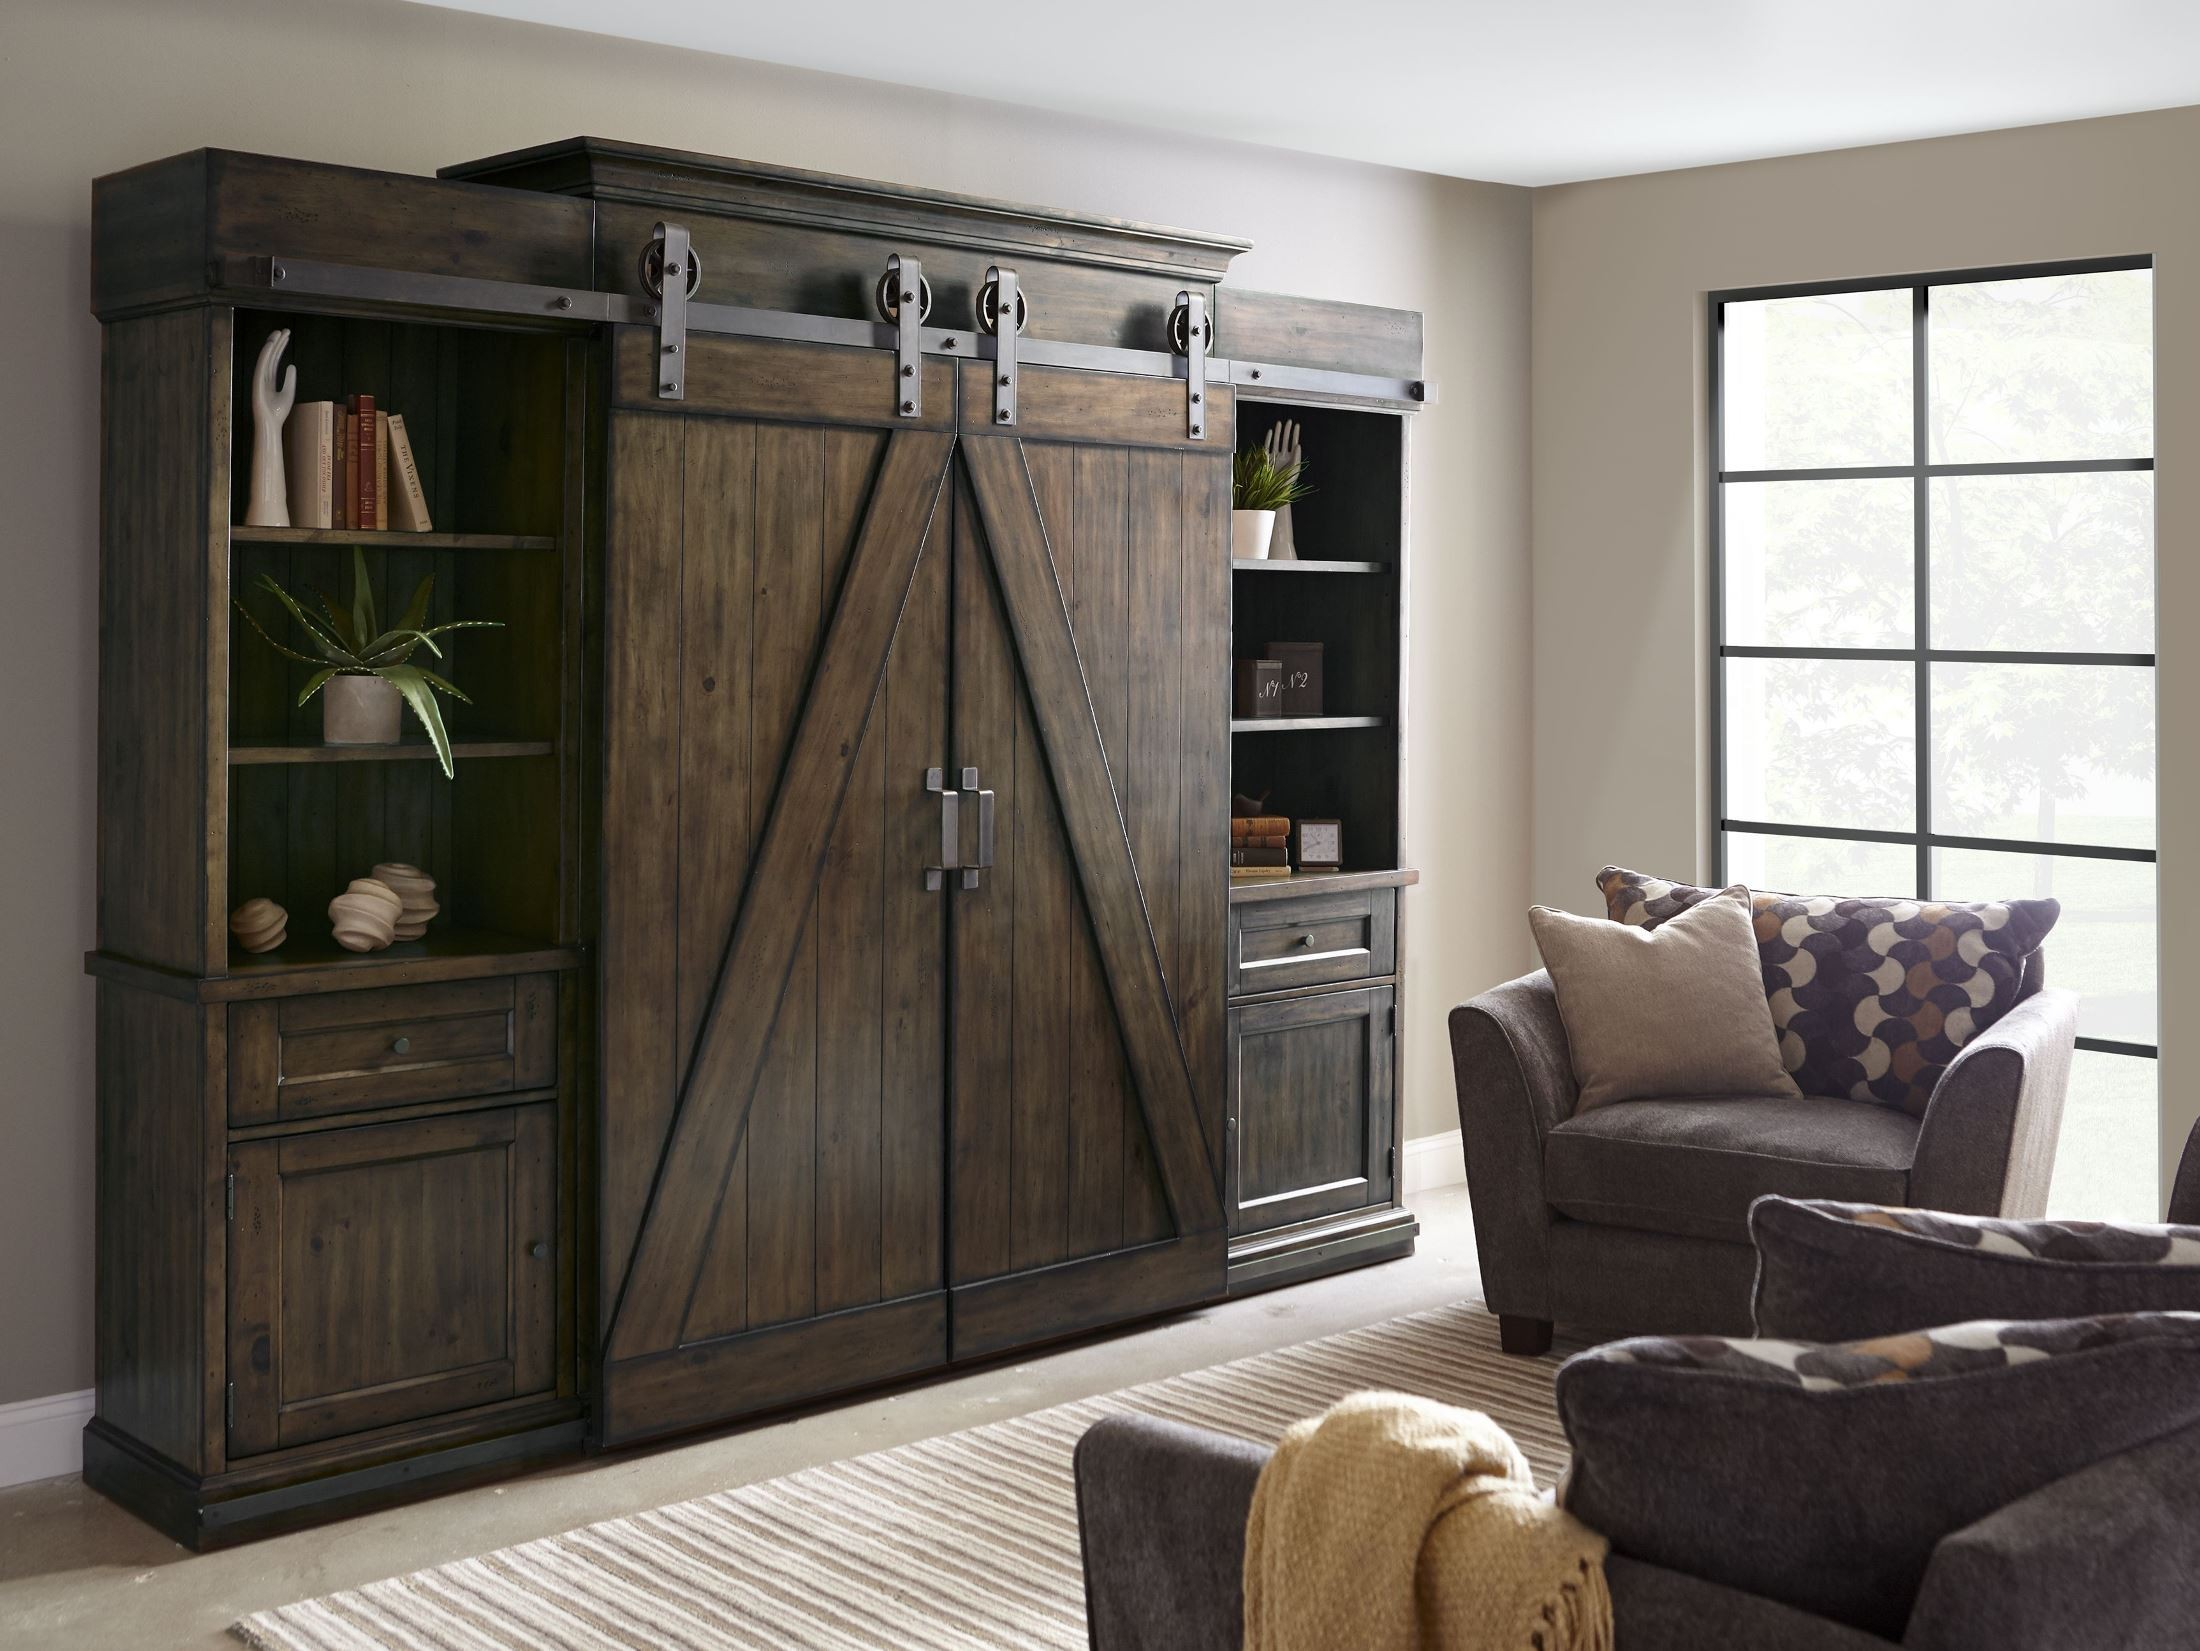 Fraser Warm Rustic Pine Wood Entertainment Wall Unit